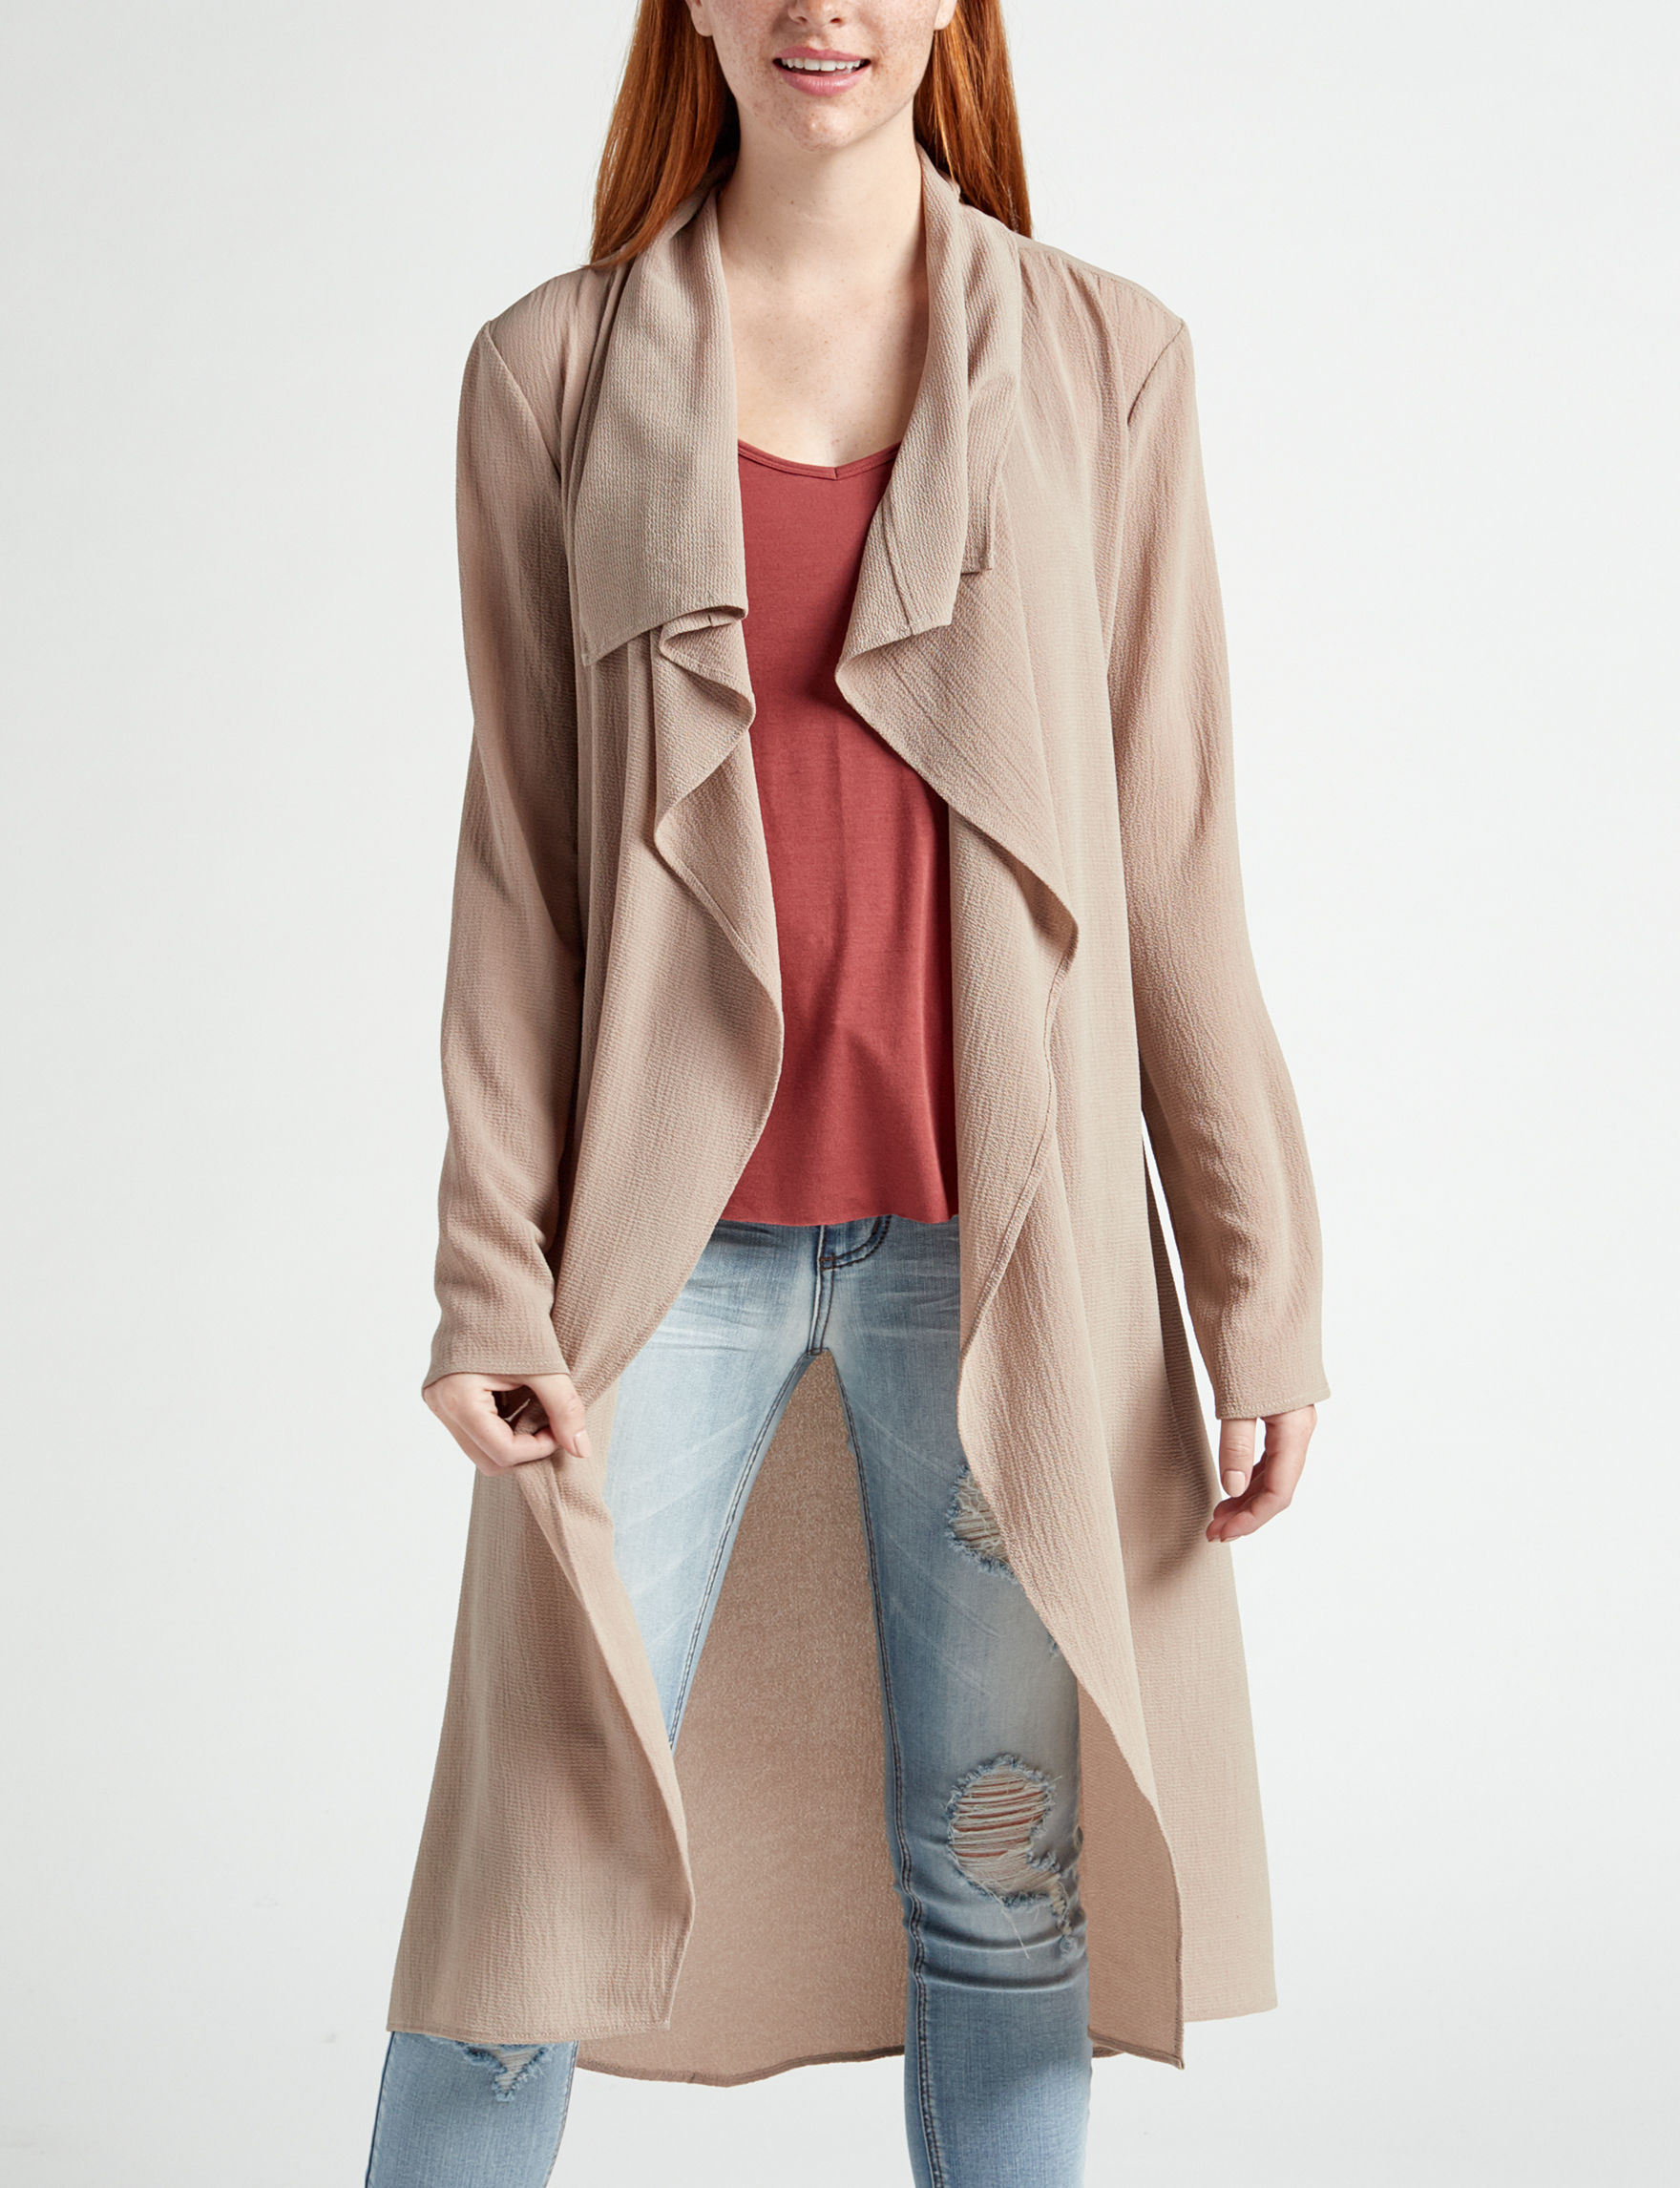 Justify Taupe Lightweight Jackets & Blazers